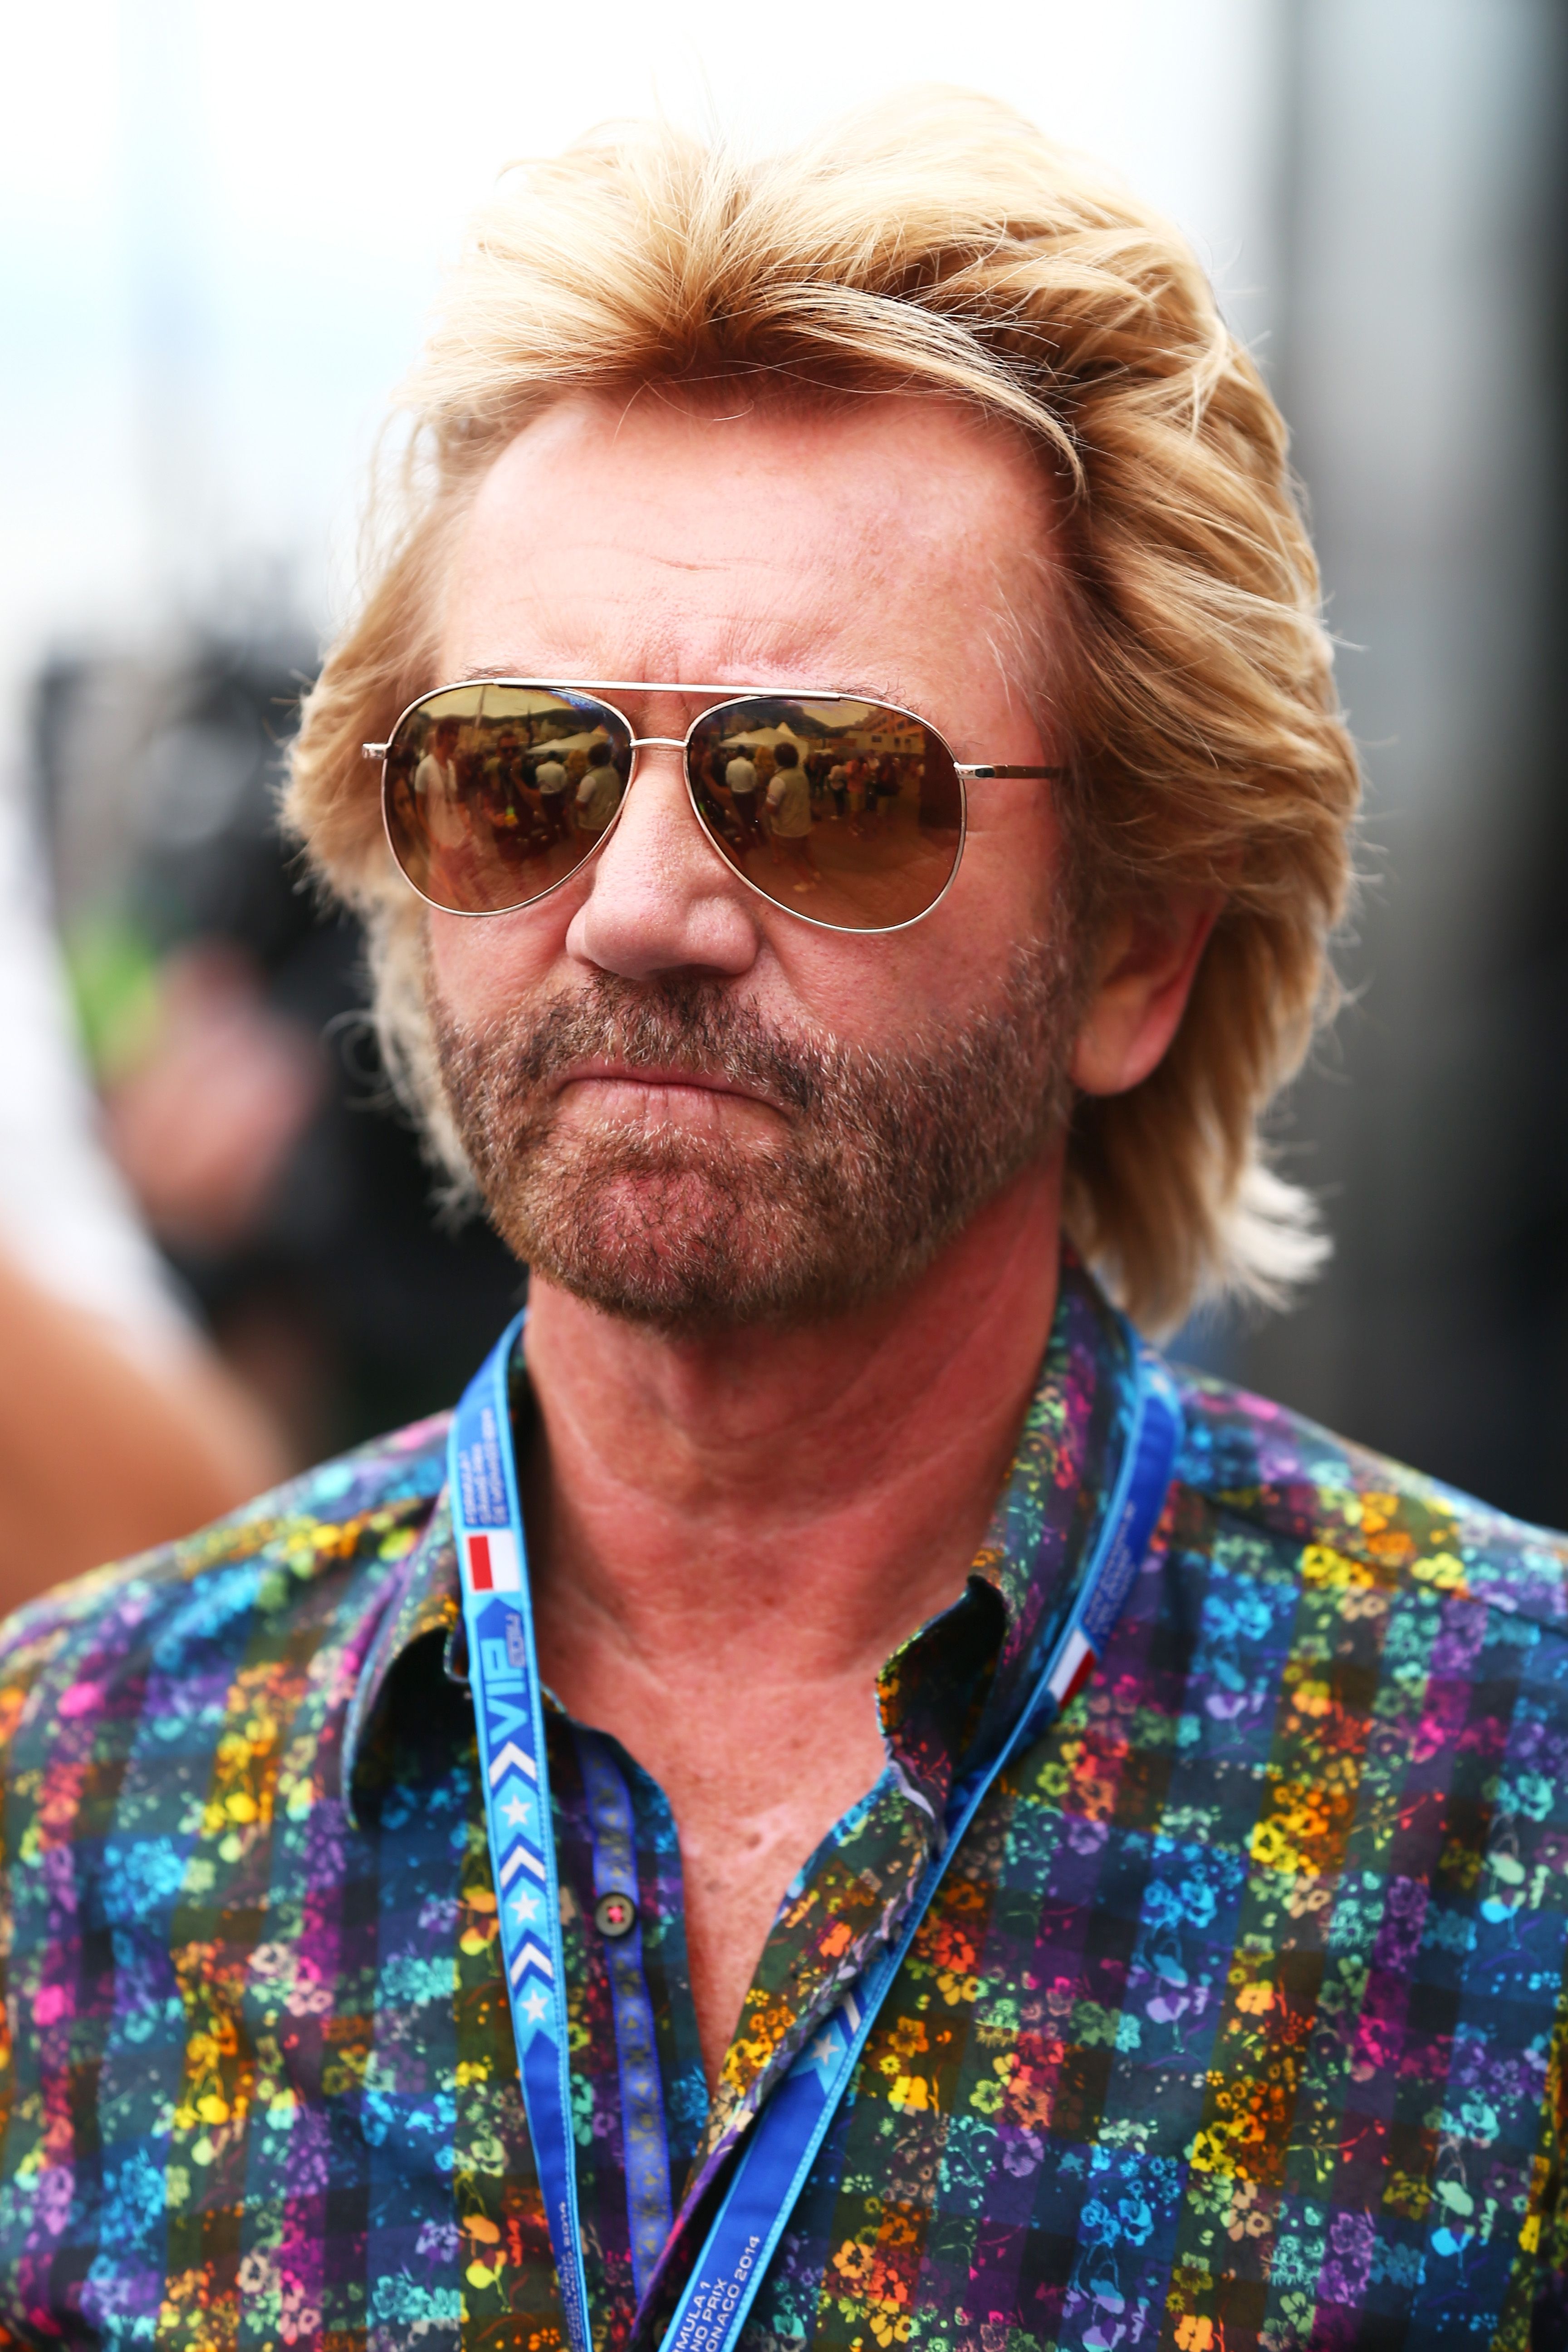 Noel Edmonds Mocks The BBC In Strangest Online Video Youll See Today GettyImages 494032789